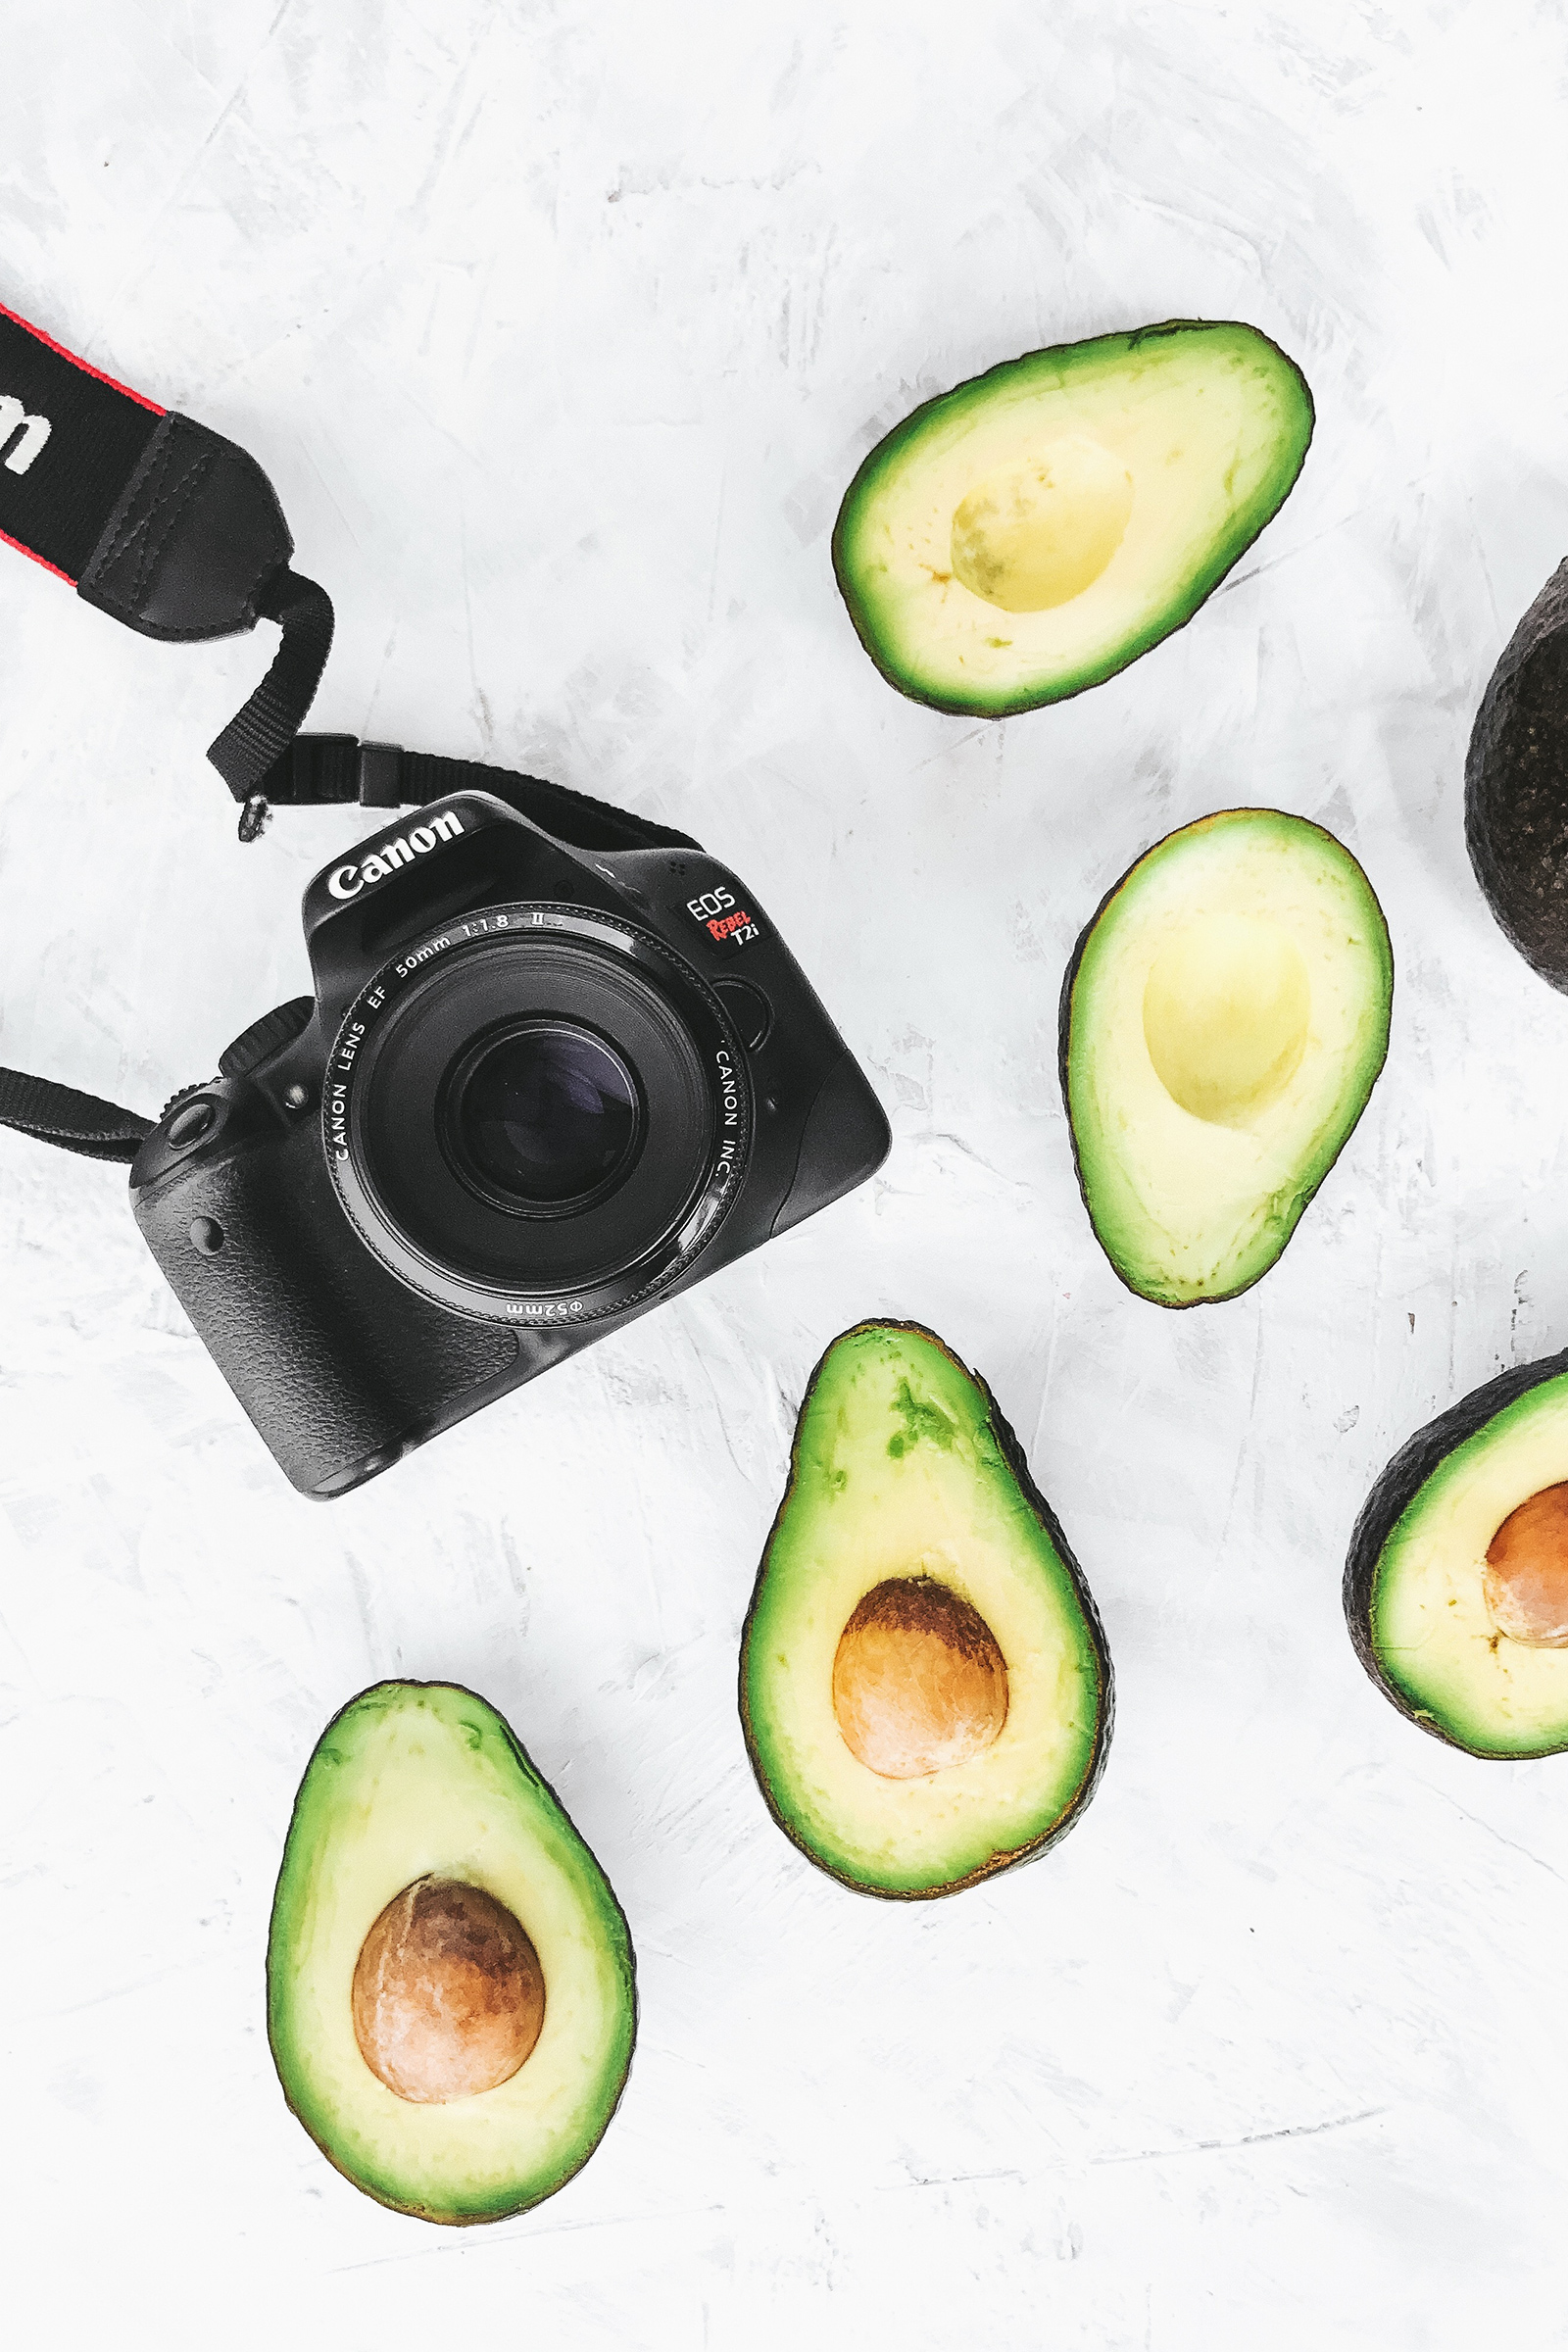 Food Photography / Food Styling / Avocados / Canon Camera / Kelly Fiance Creative